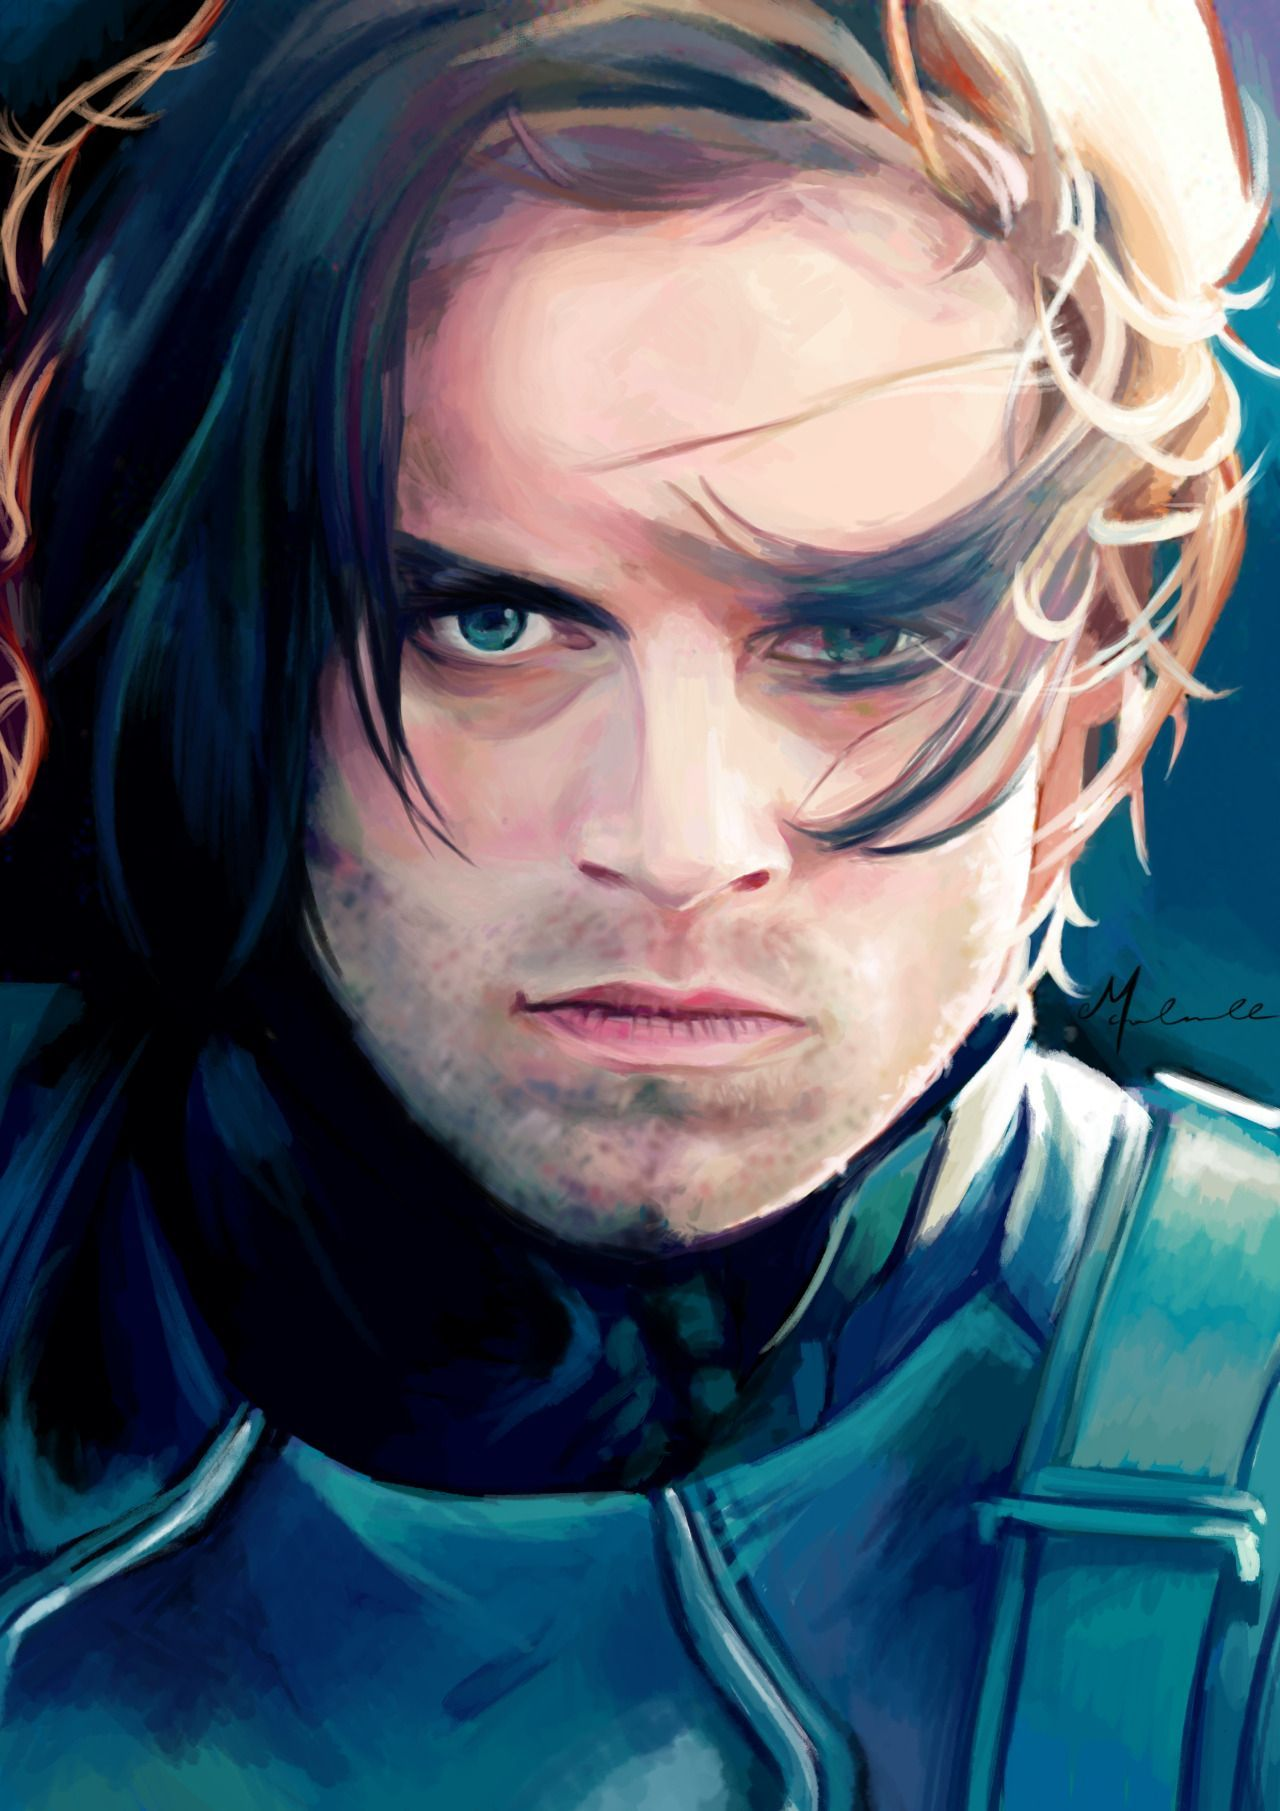 Incredible fanart The Winter Soldier | Comic drawings in 2019